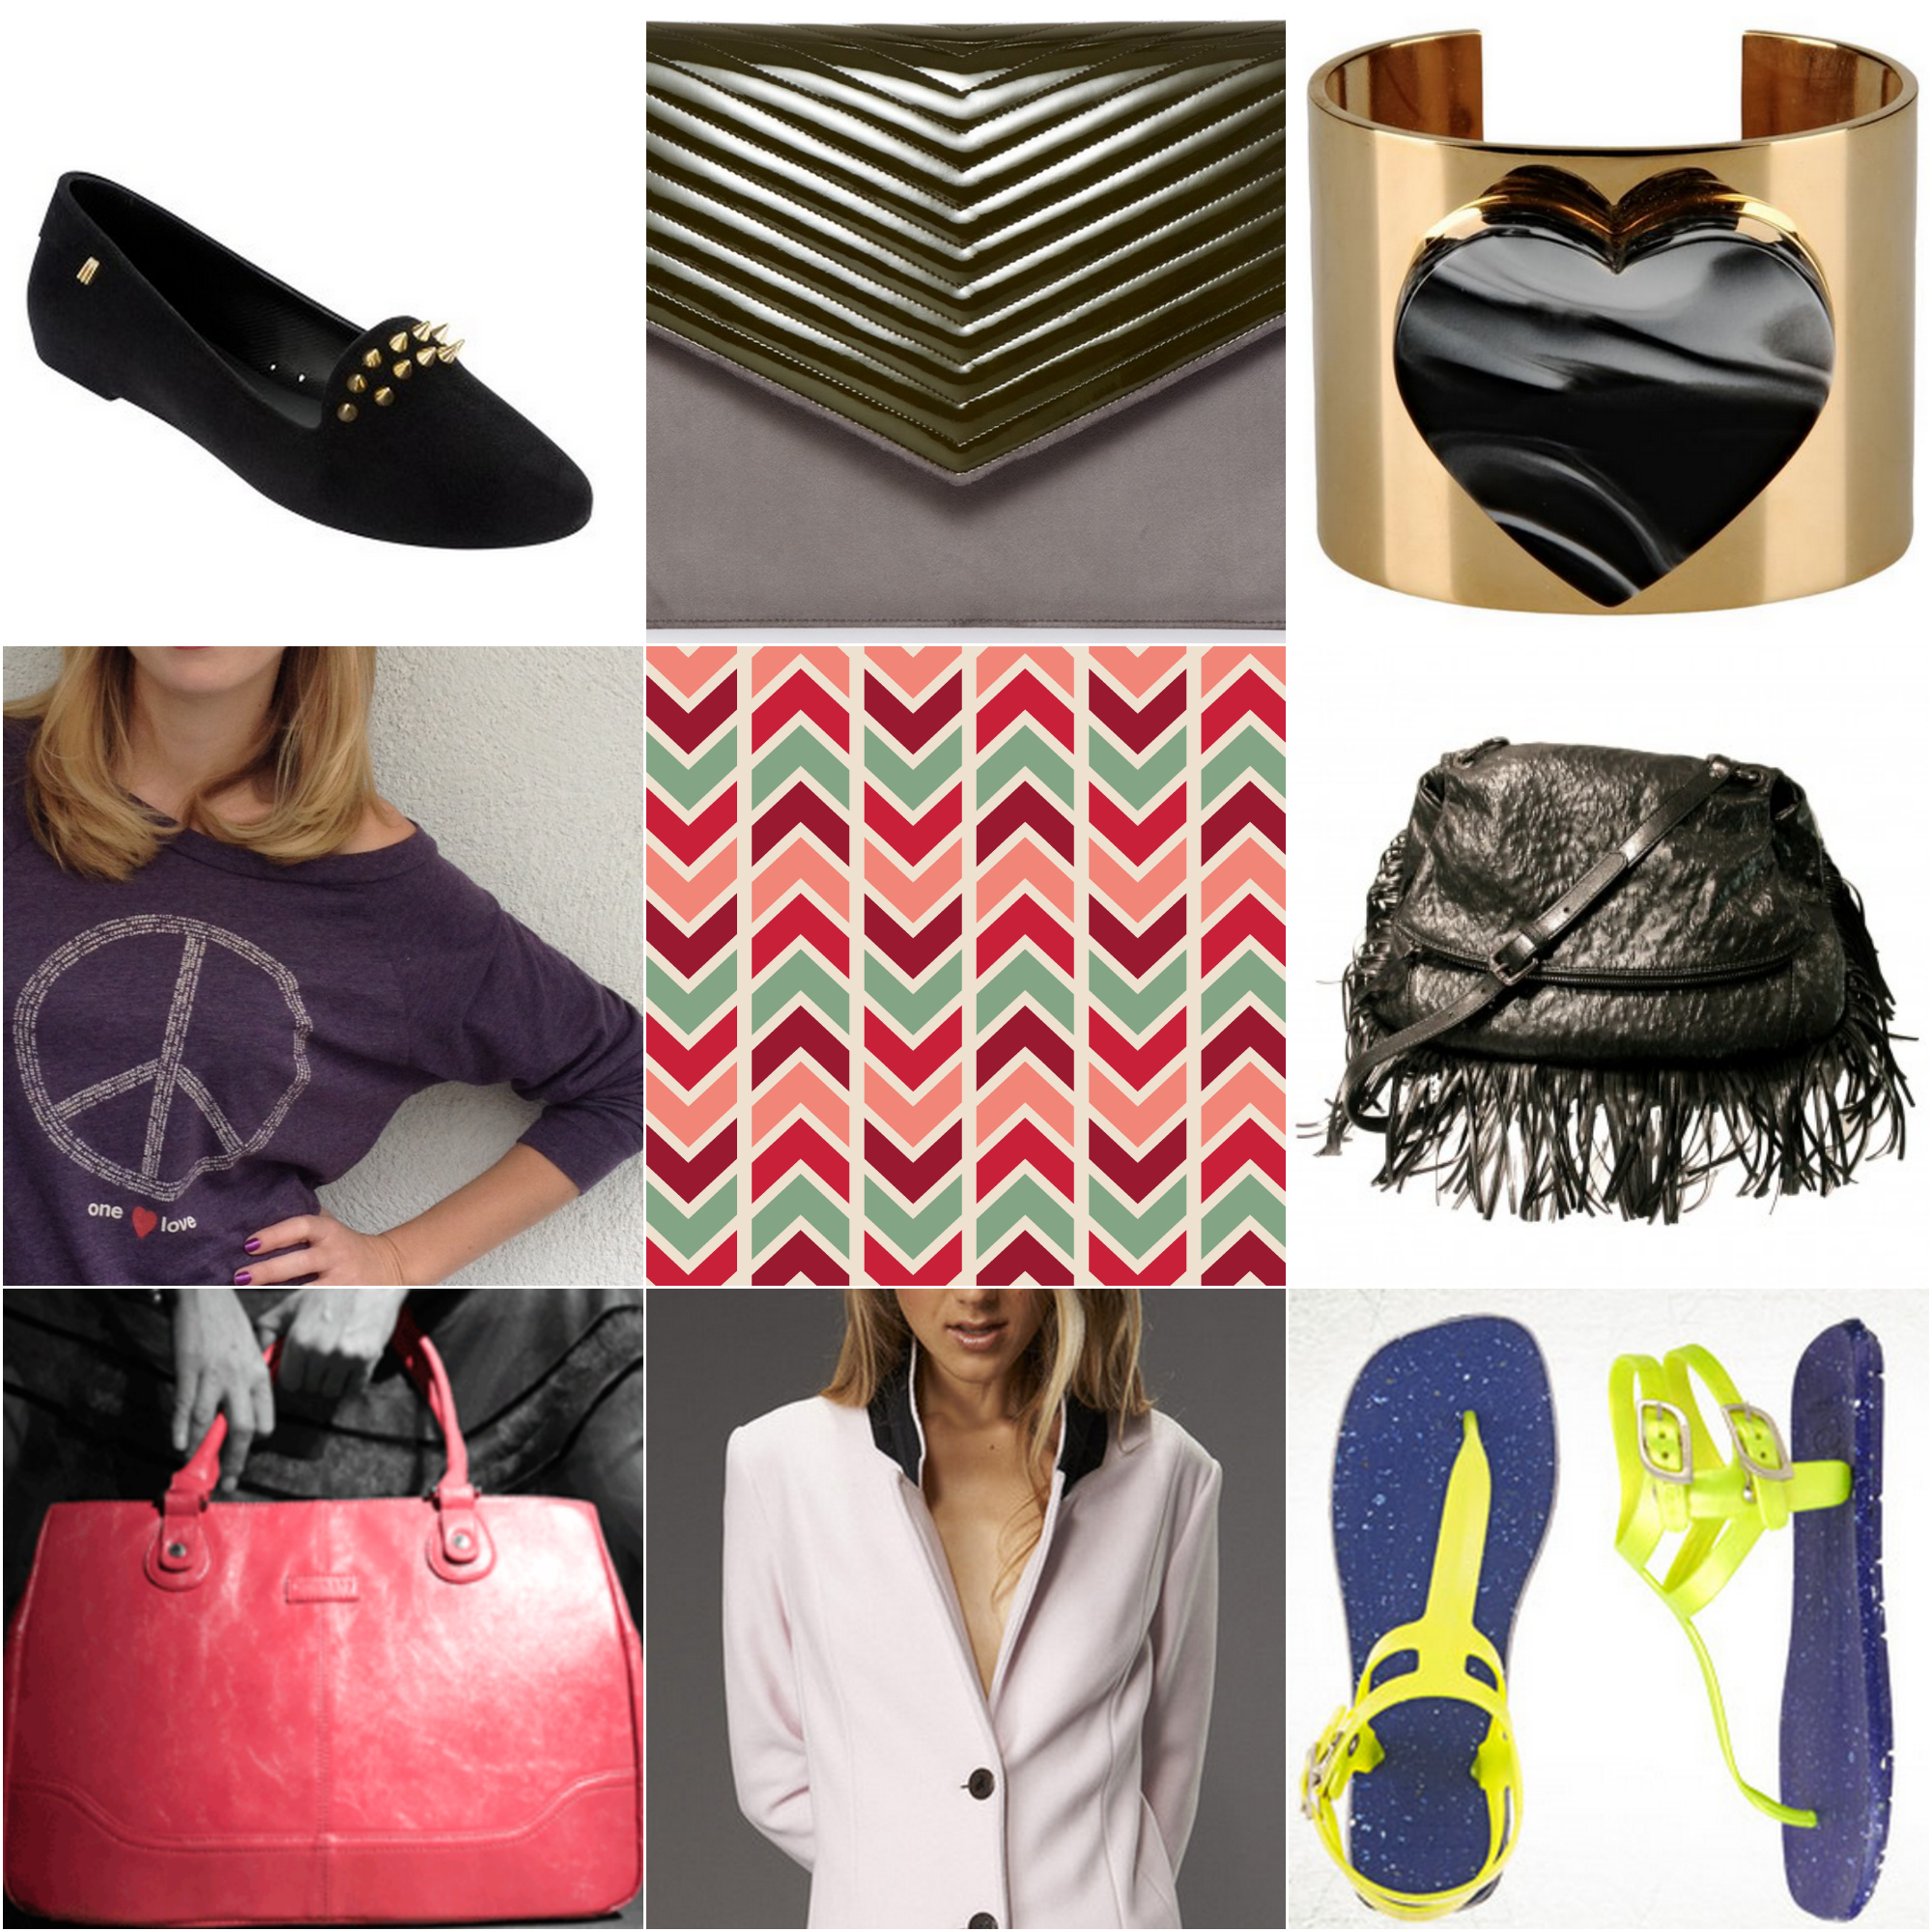 Veggie Dreamgirl Holiday Gift Guide: Fashionista